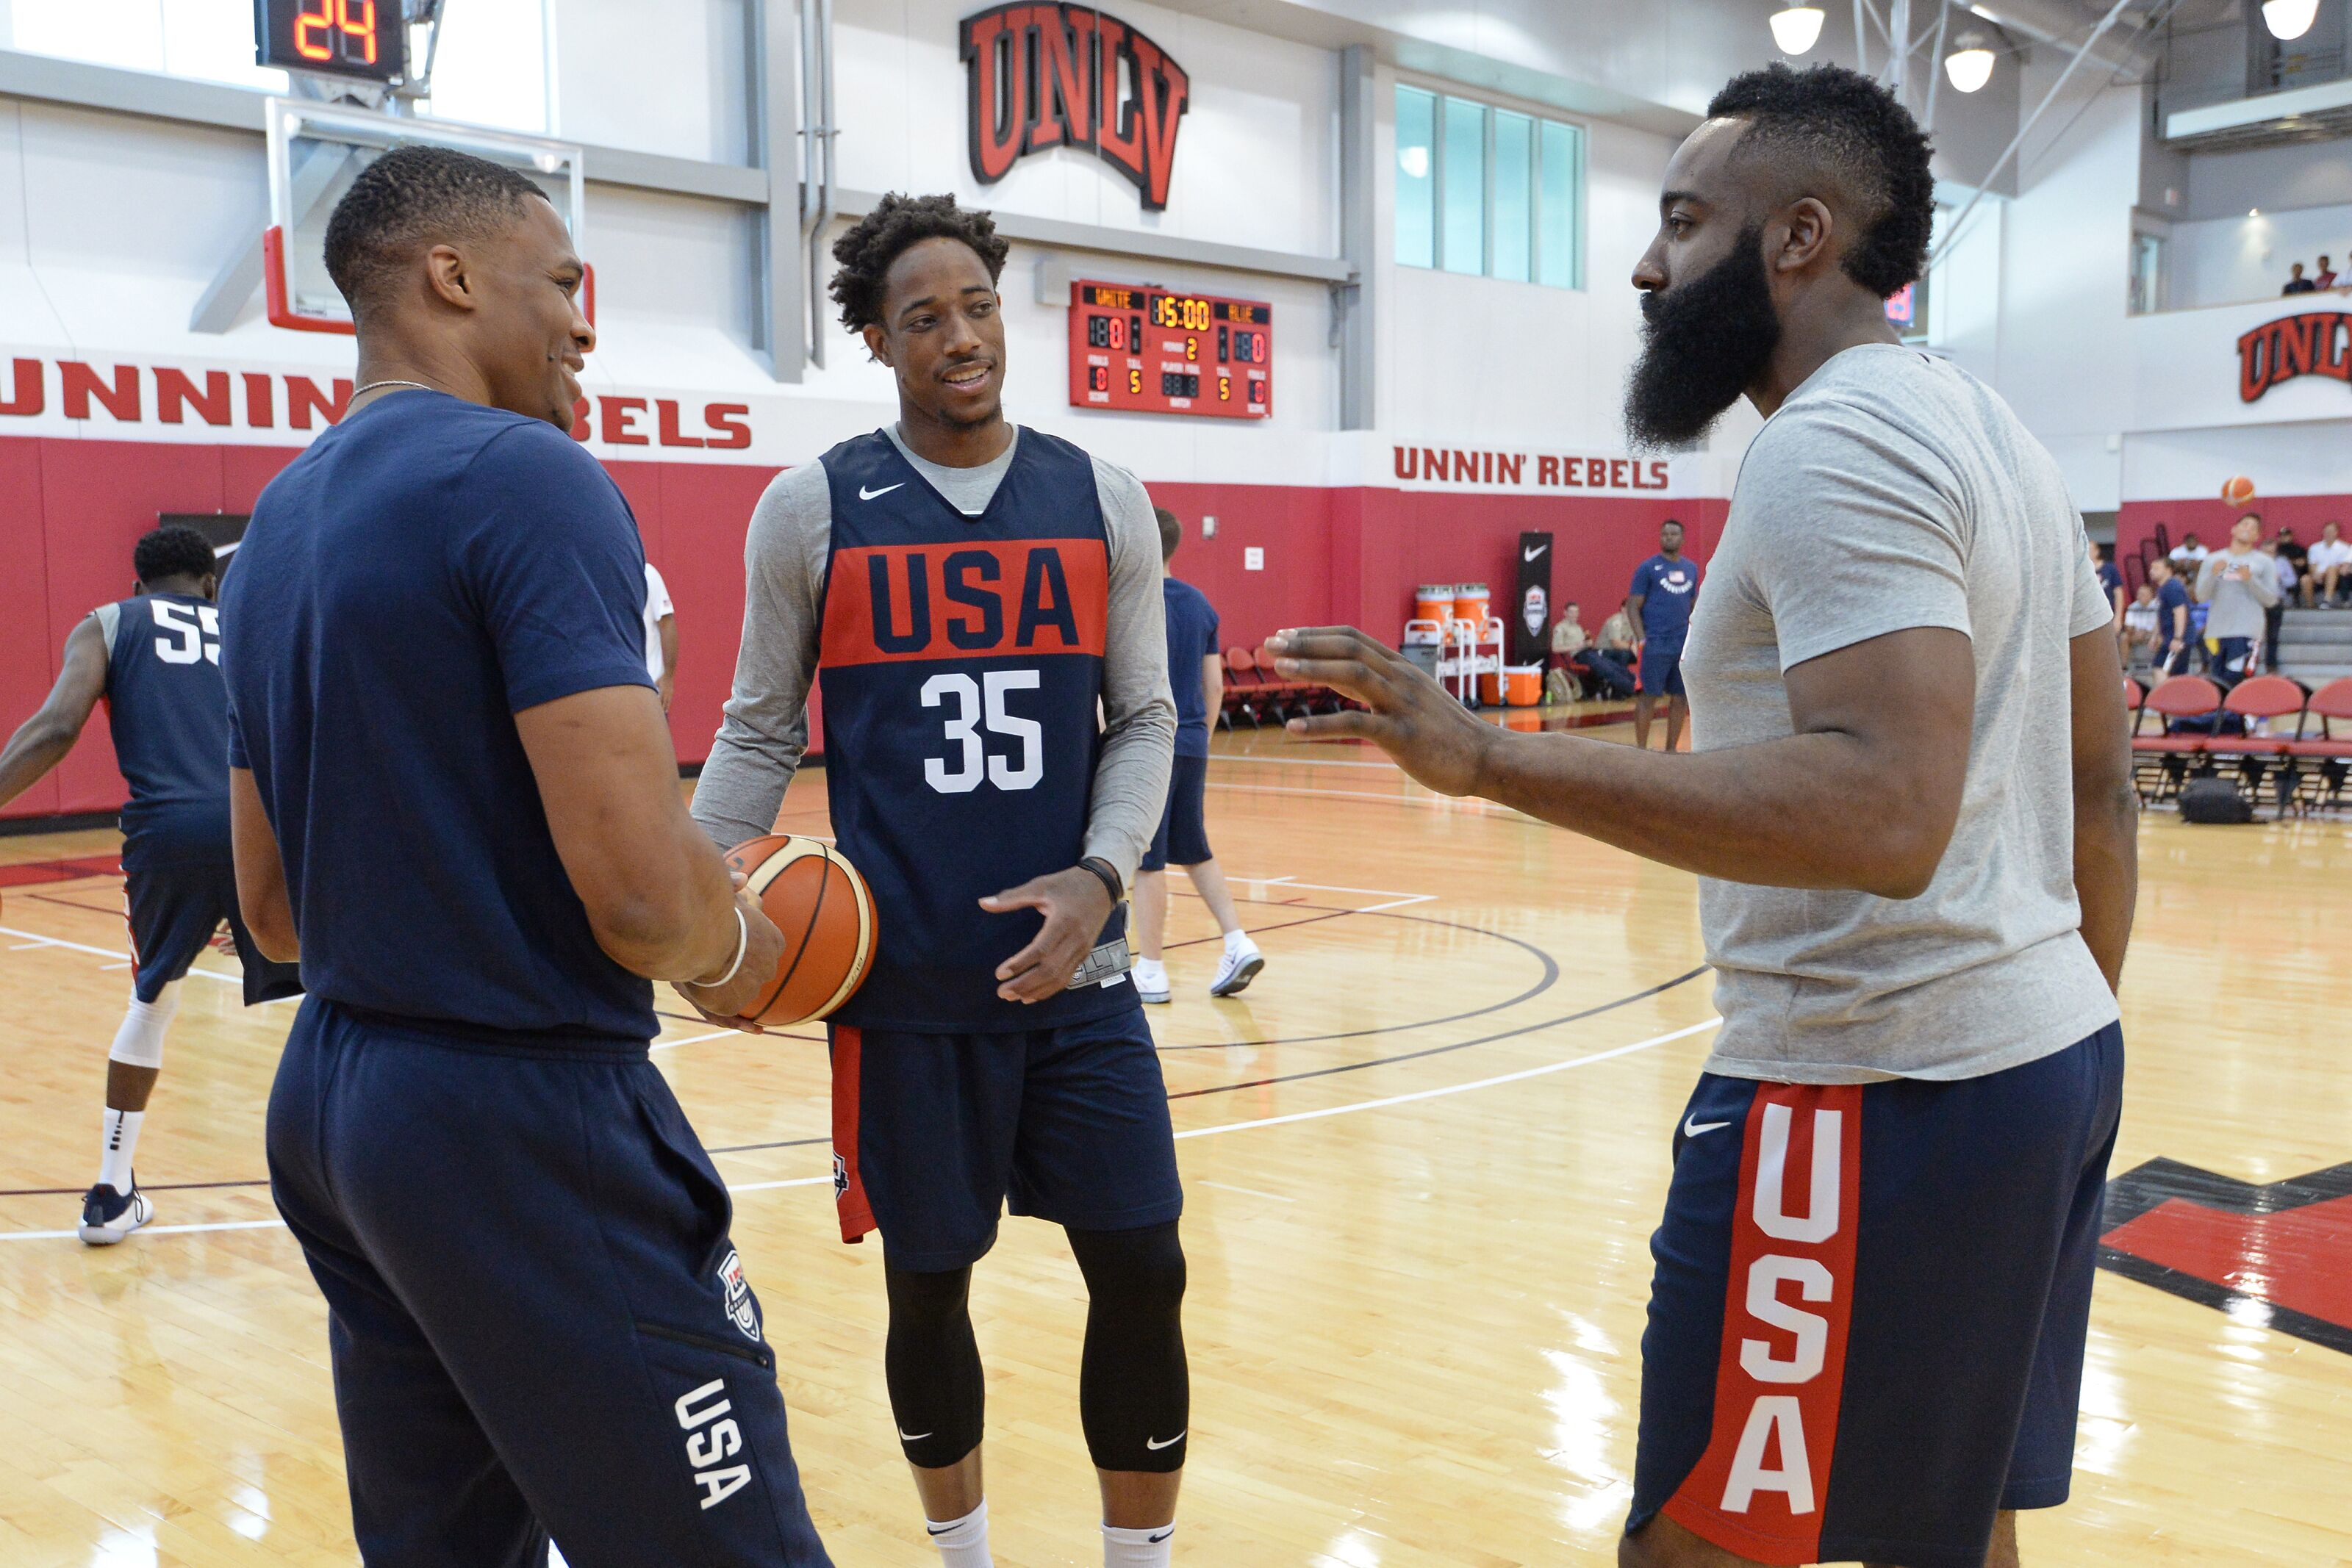 44ee0763b247 Original OK3 interact at USA mini camp as Westbrook imitates Harden and  gets in KD tiff